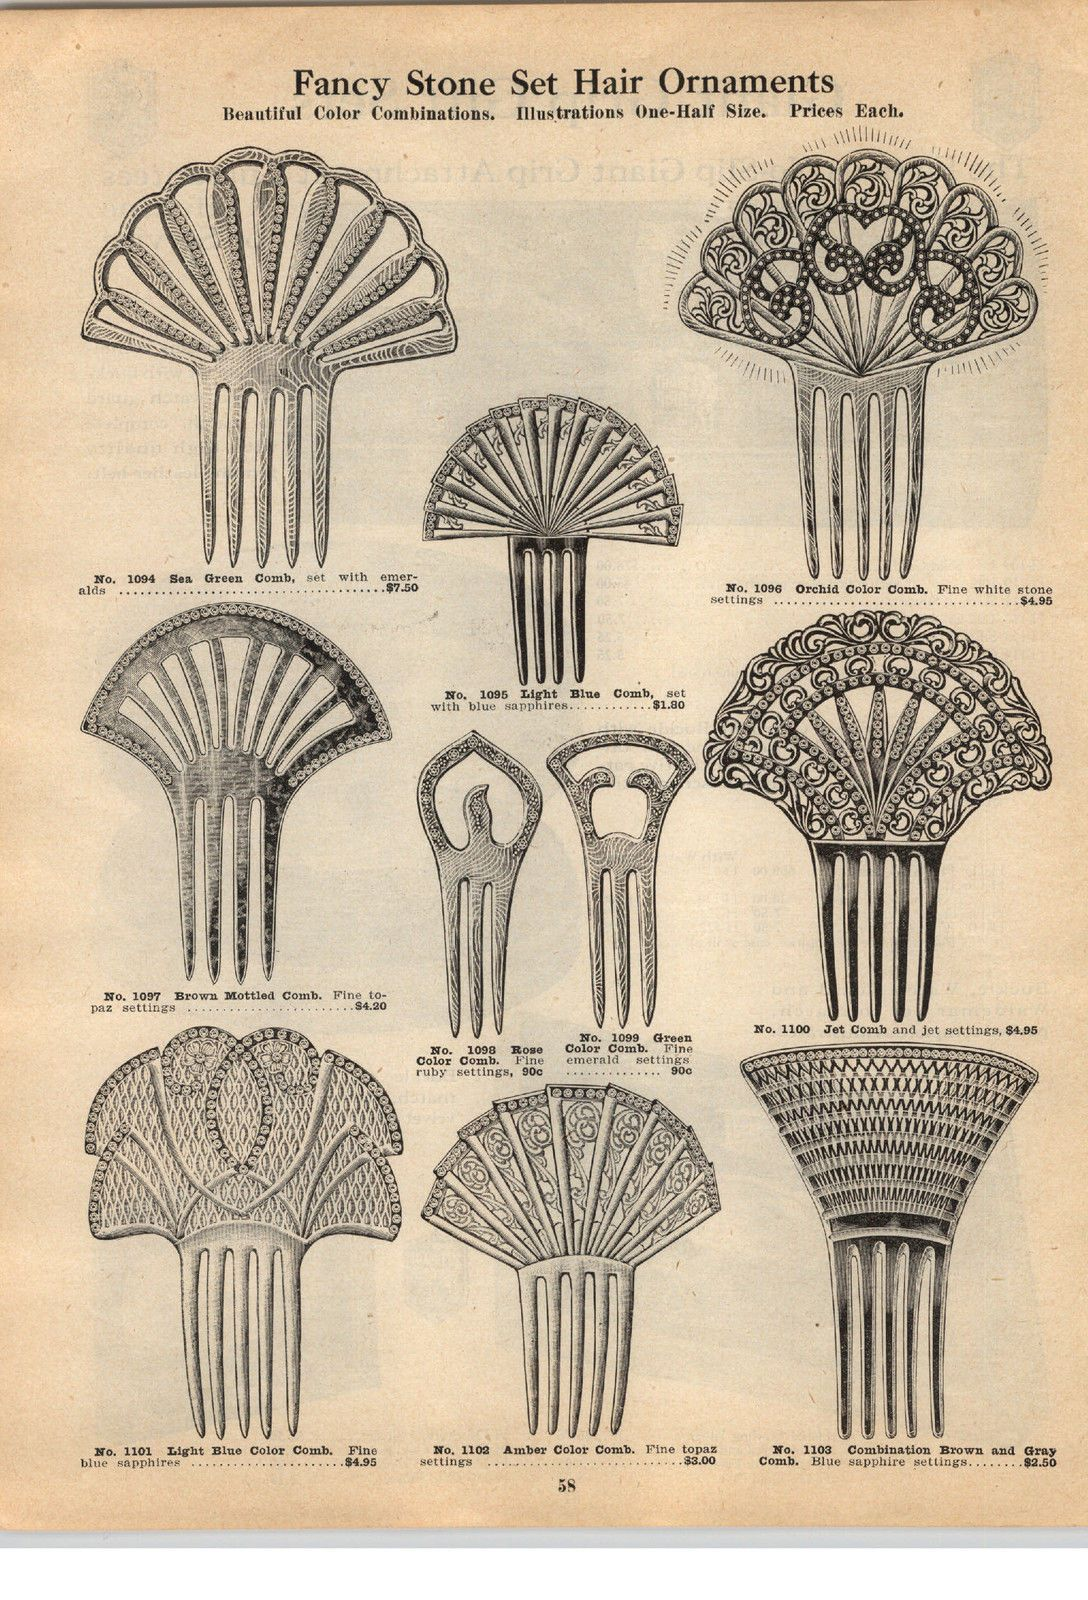 1924 Paper Ad Fancy Stone Jeweled Hair Ornaments Combs Jet Comb Hair Ornaments Antique Hair Combs Fancy Stones